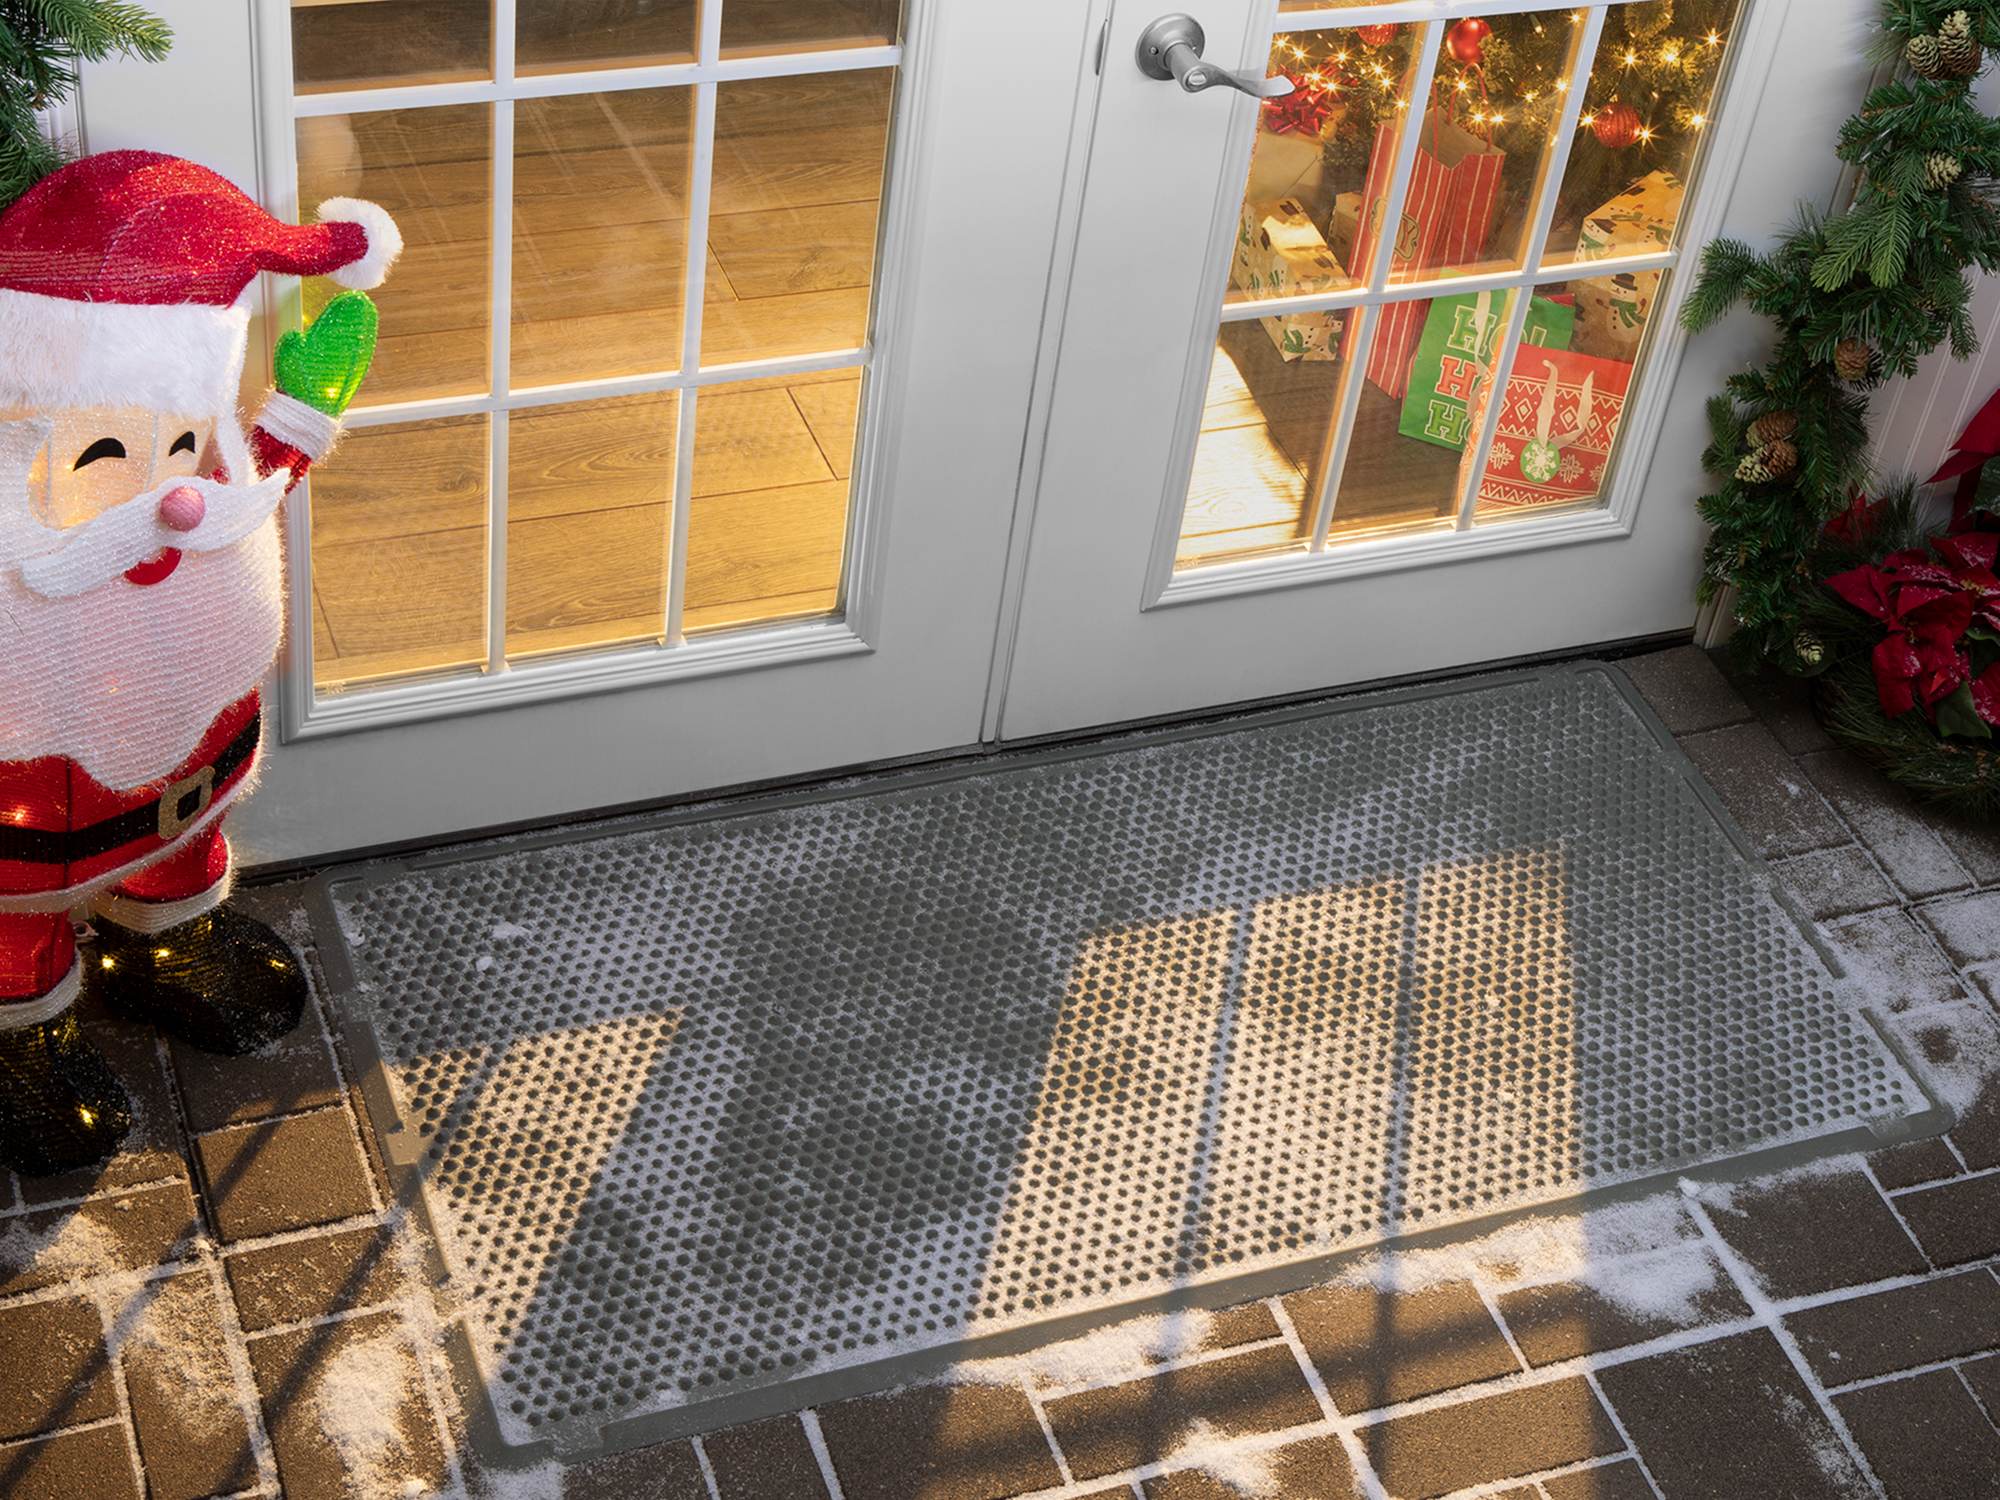 OurdoorMat at Christmas